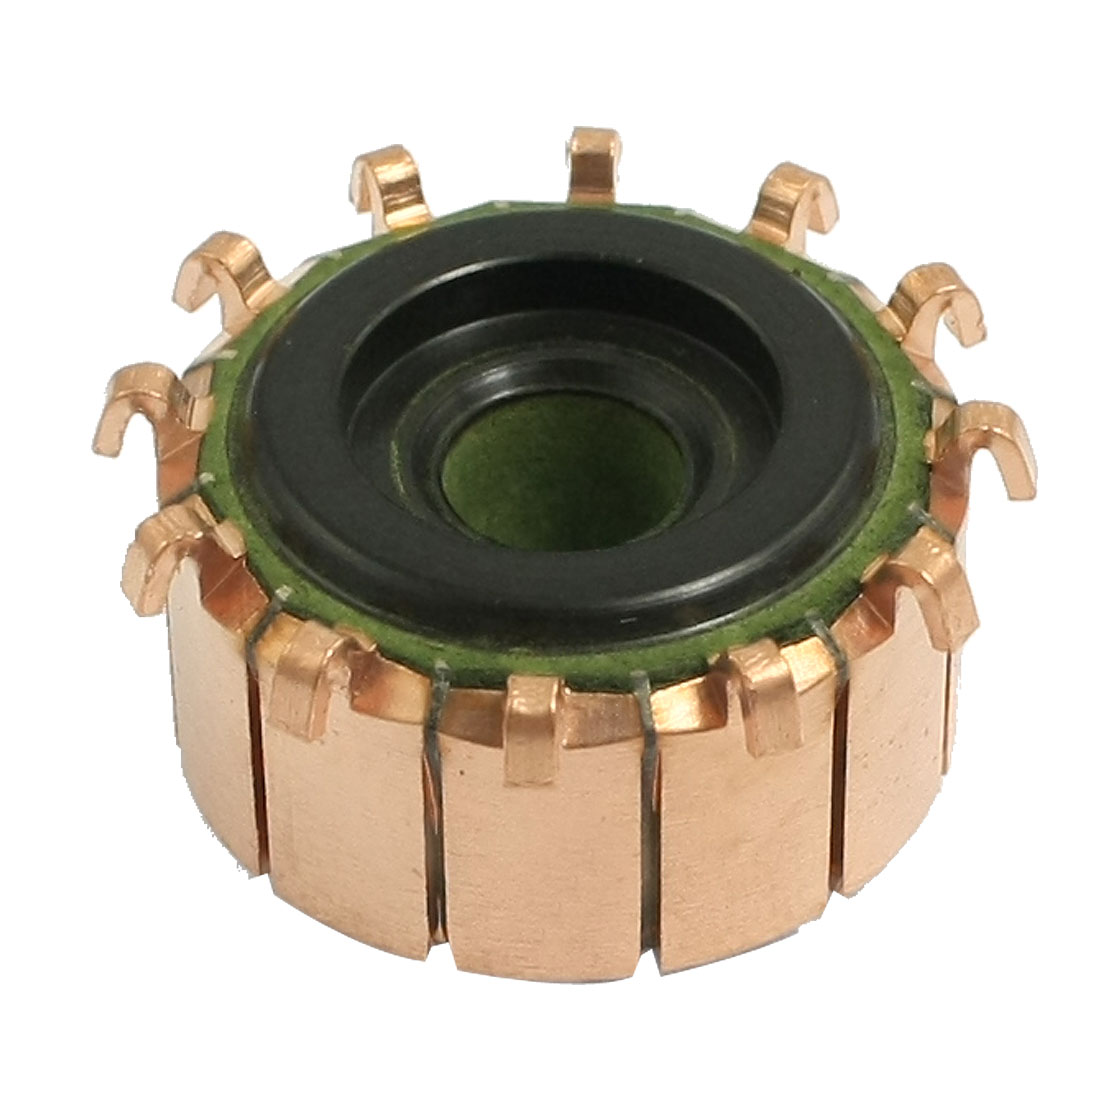 6.35mm x 21.5mm x 12mm Copper Case Auto Alternator Motor Power Tool Commutator